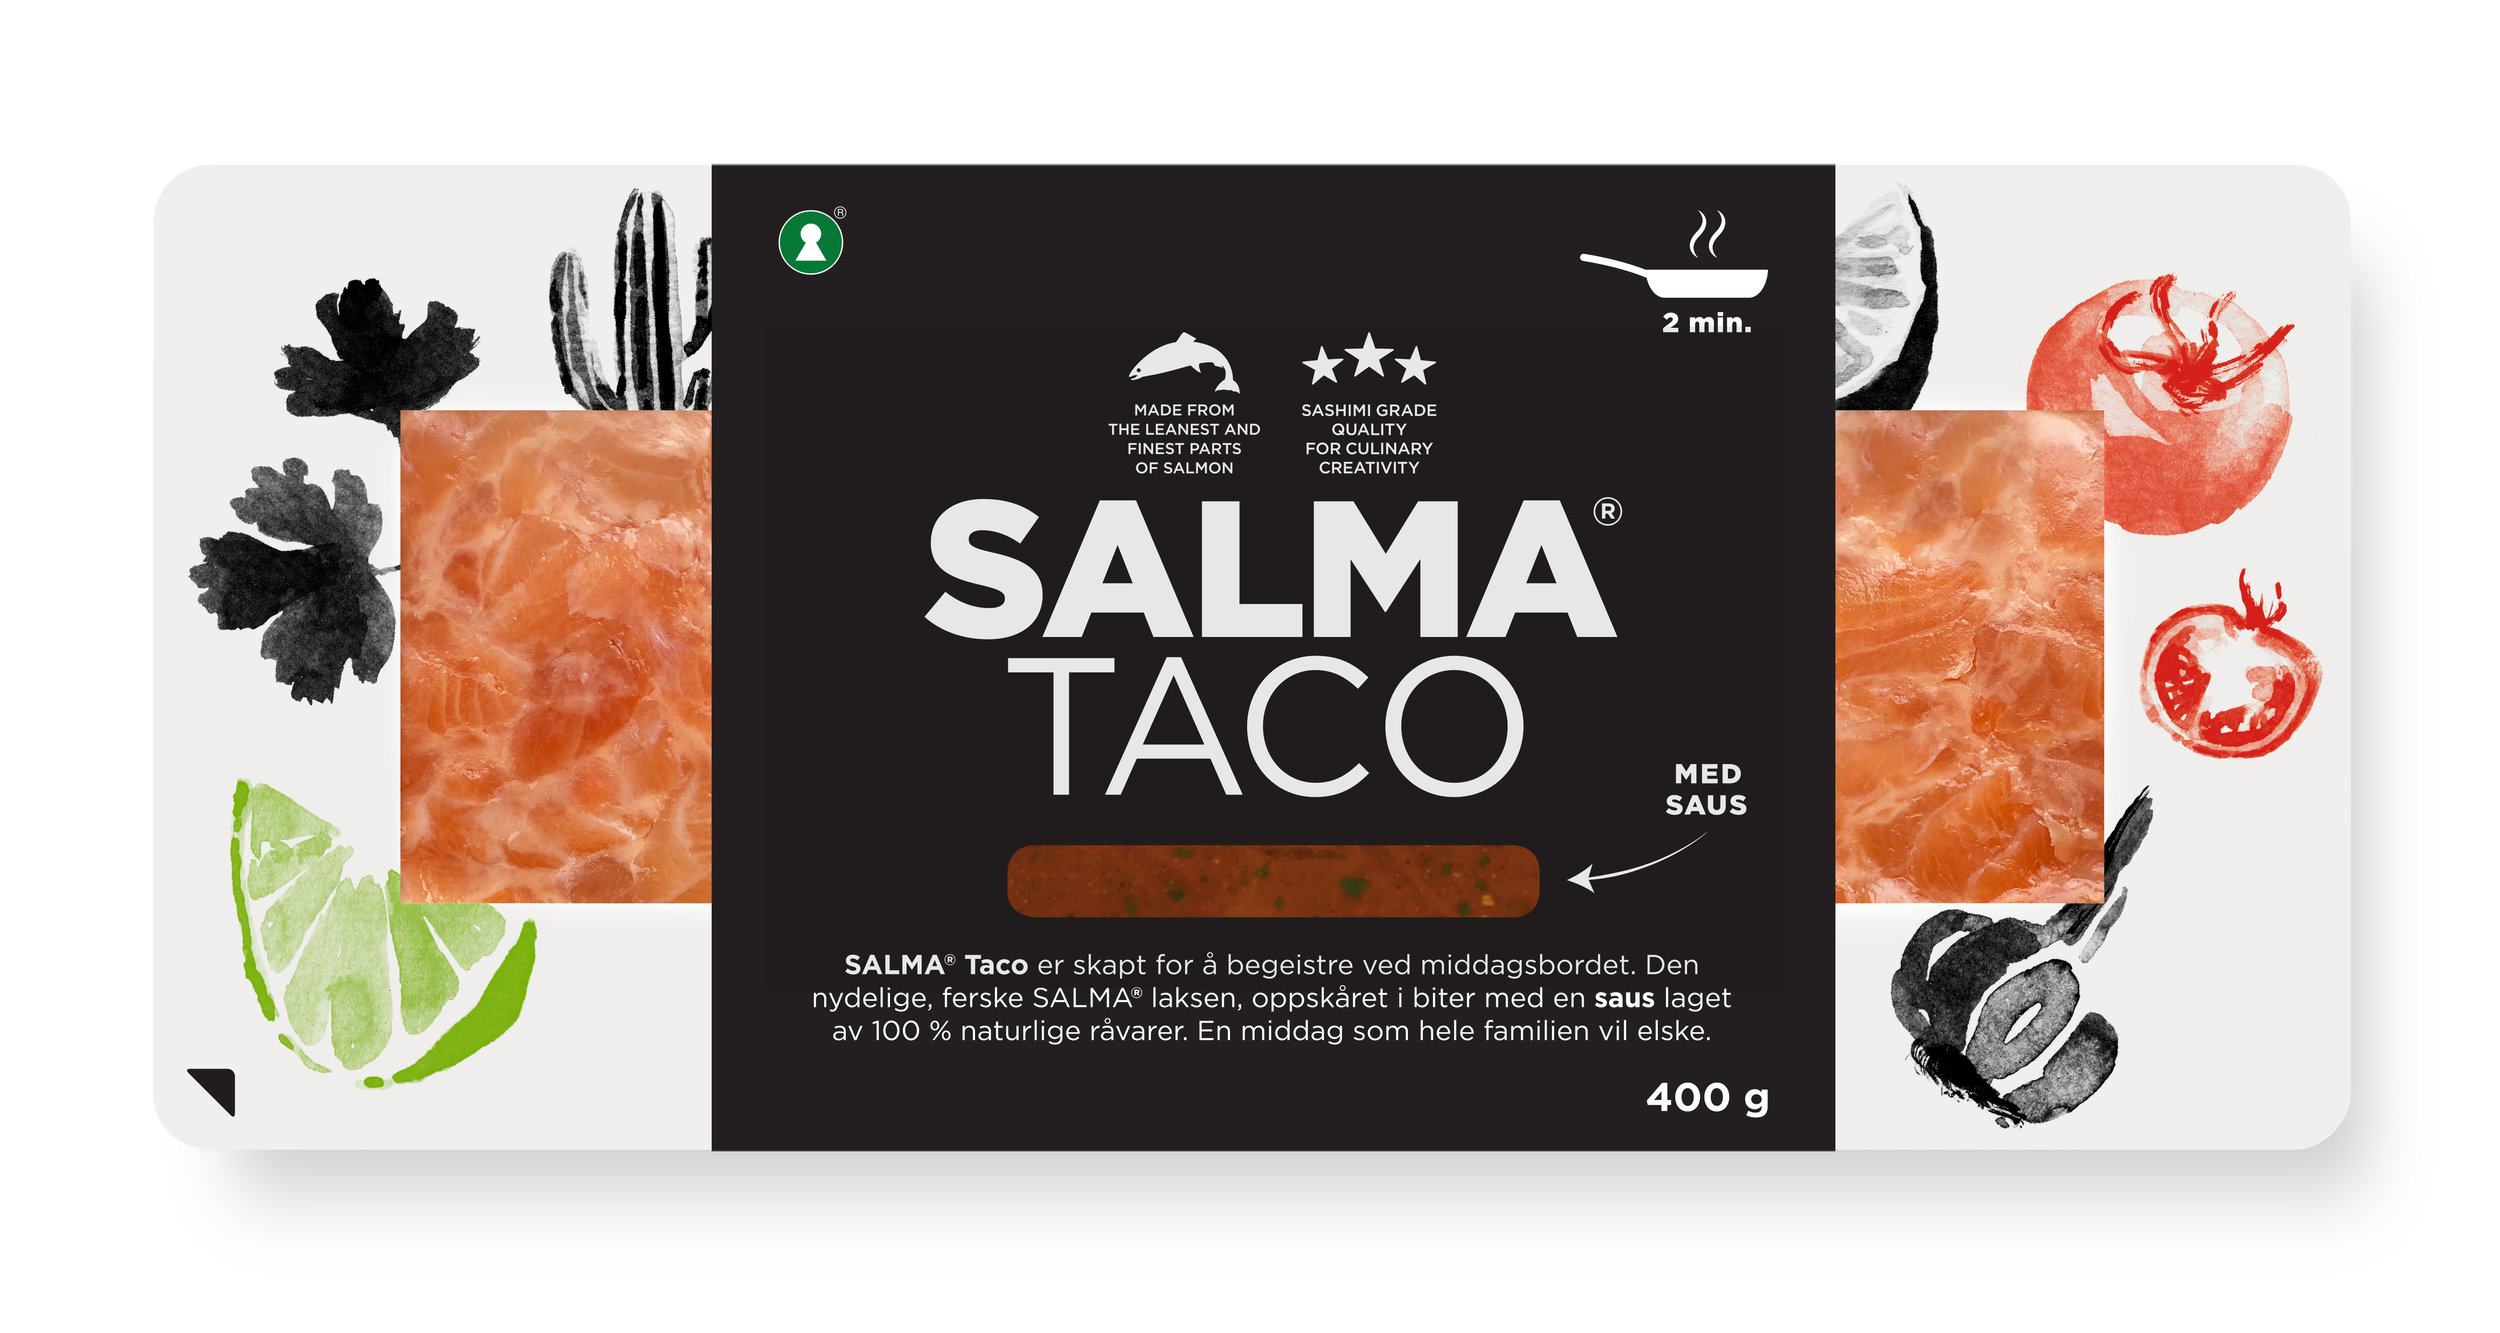 Packaging design by Cretalux. Photo by  Salma .